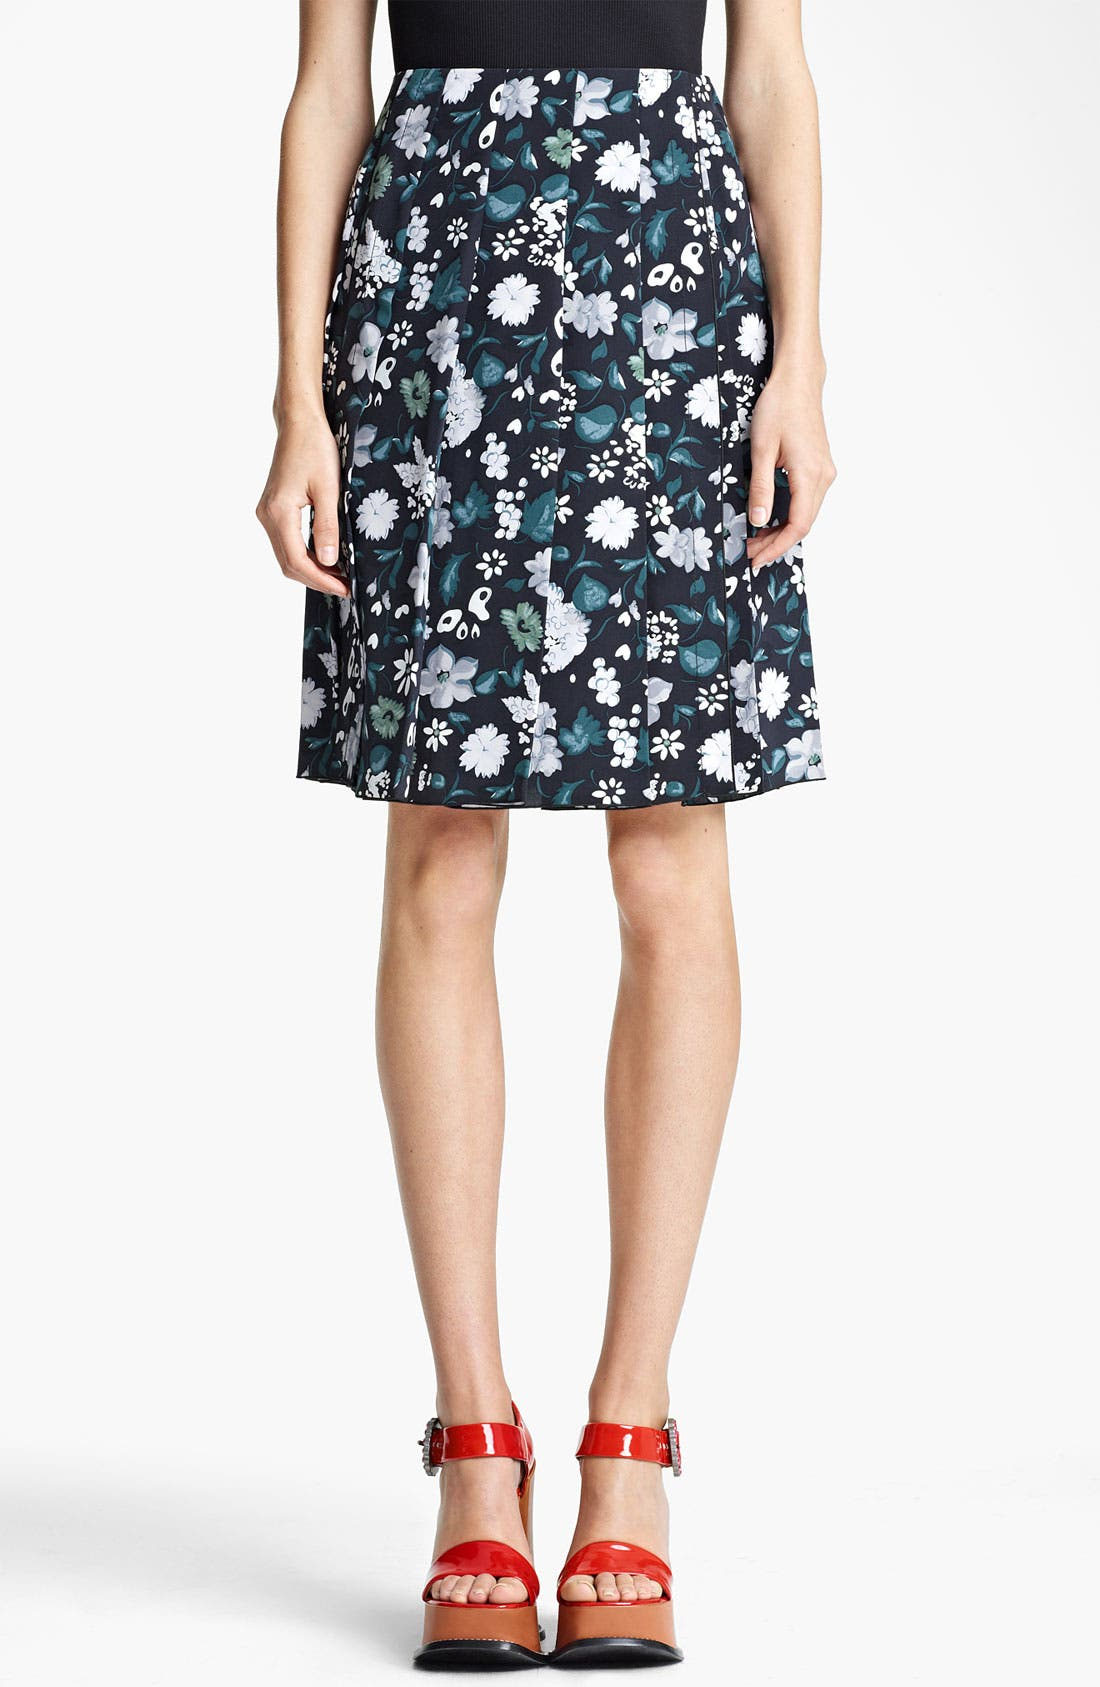 Alternate Image 1 Selected - MARC JACOBS Print Crêpe de Chine Skirt